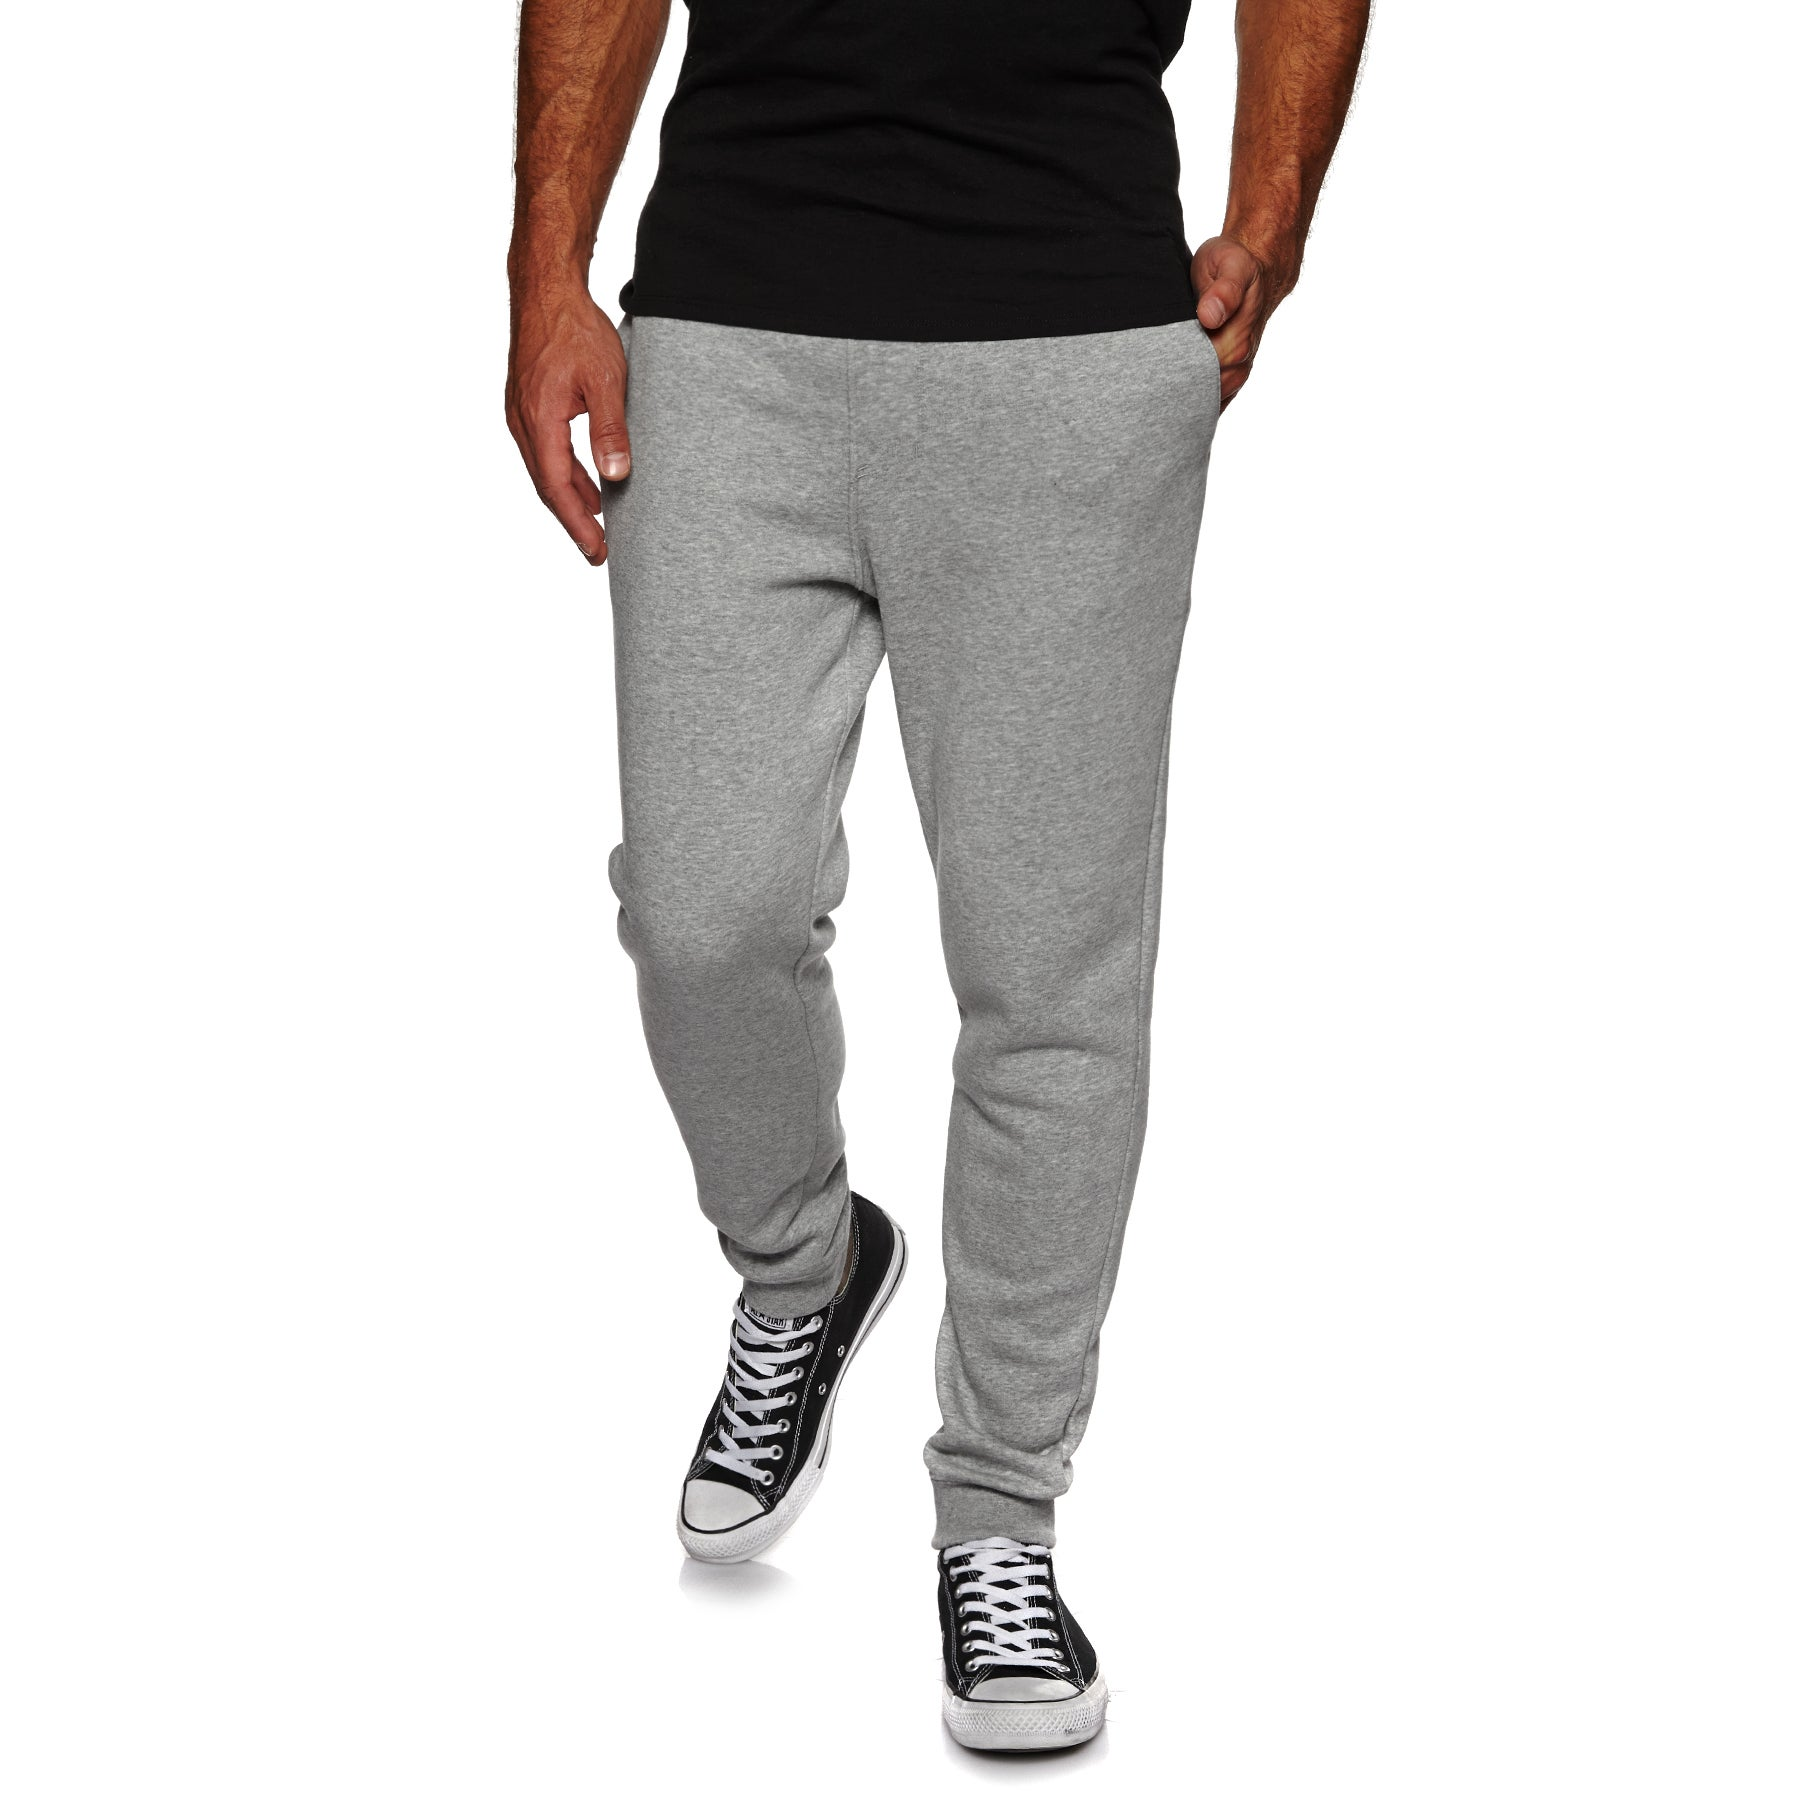 Hurley Surf Check Jogging Pants - Dark Grey Htr